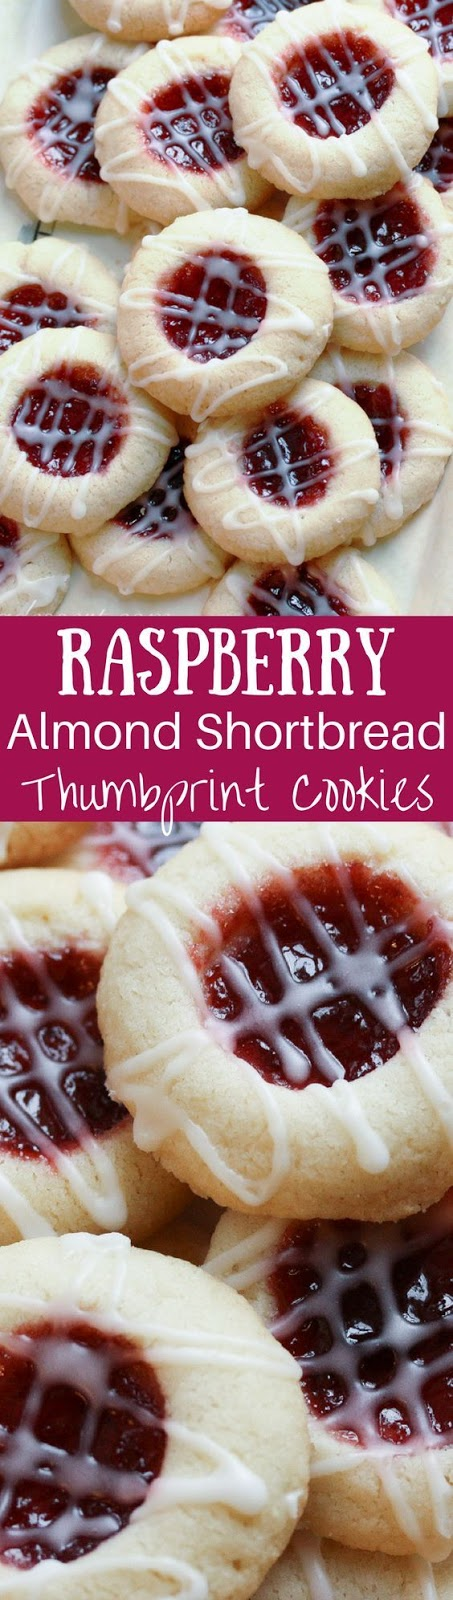 Raspberry Almond Shortbread Thumbprints Recipe